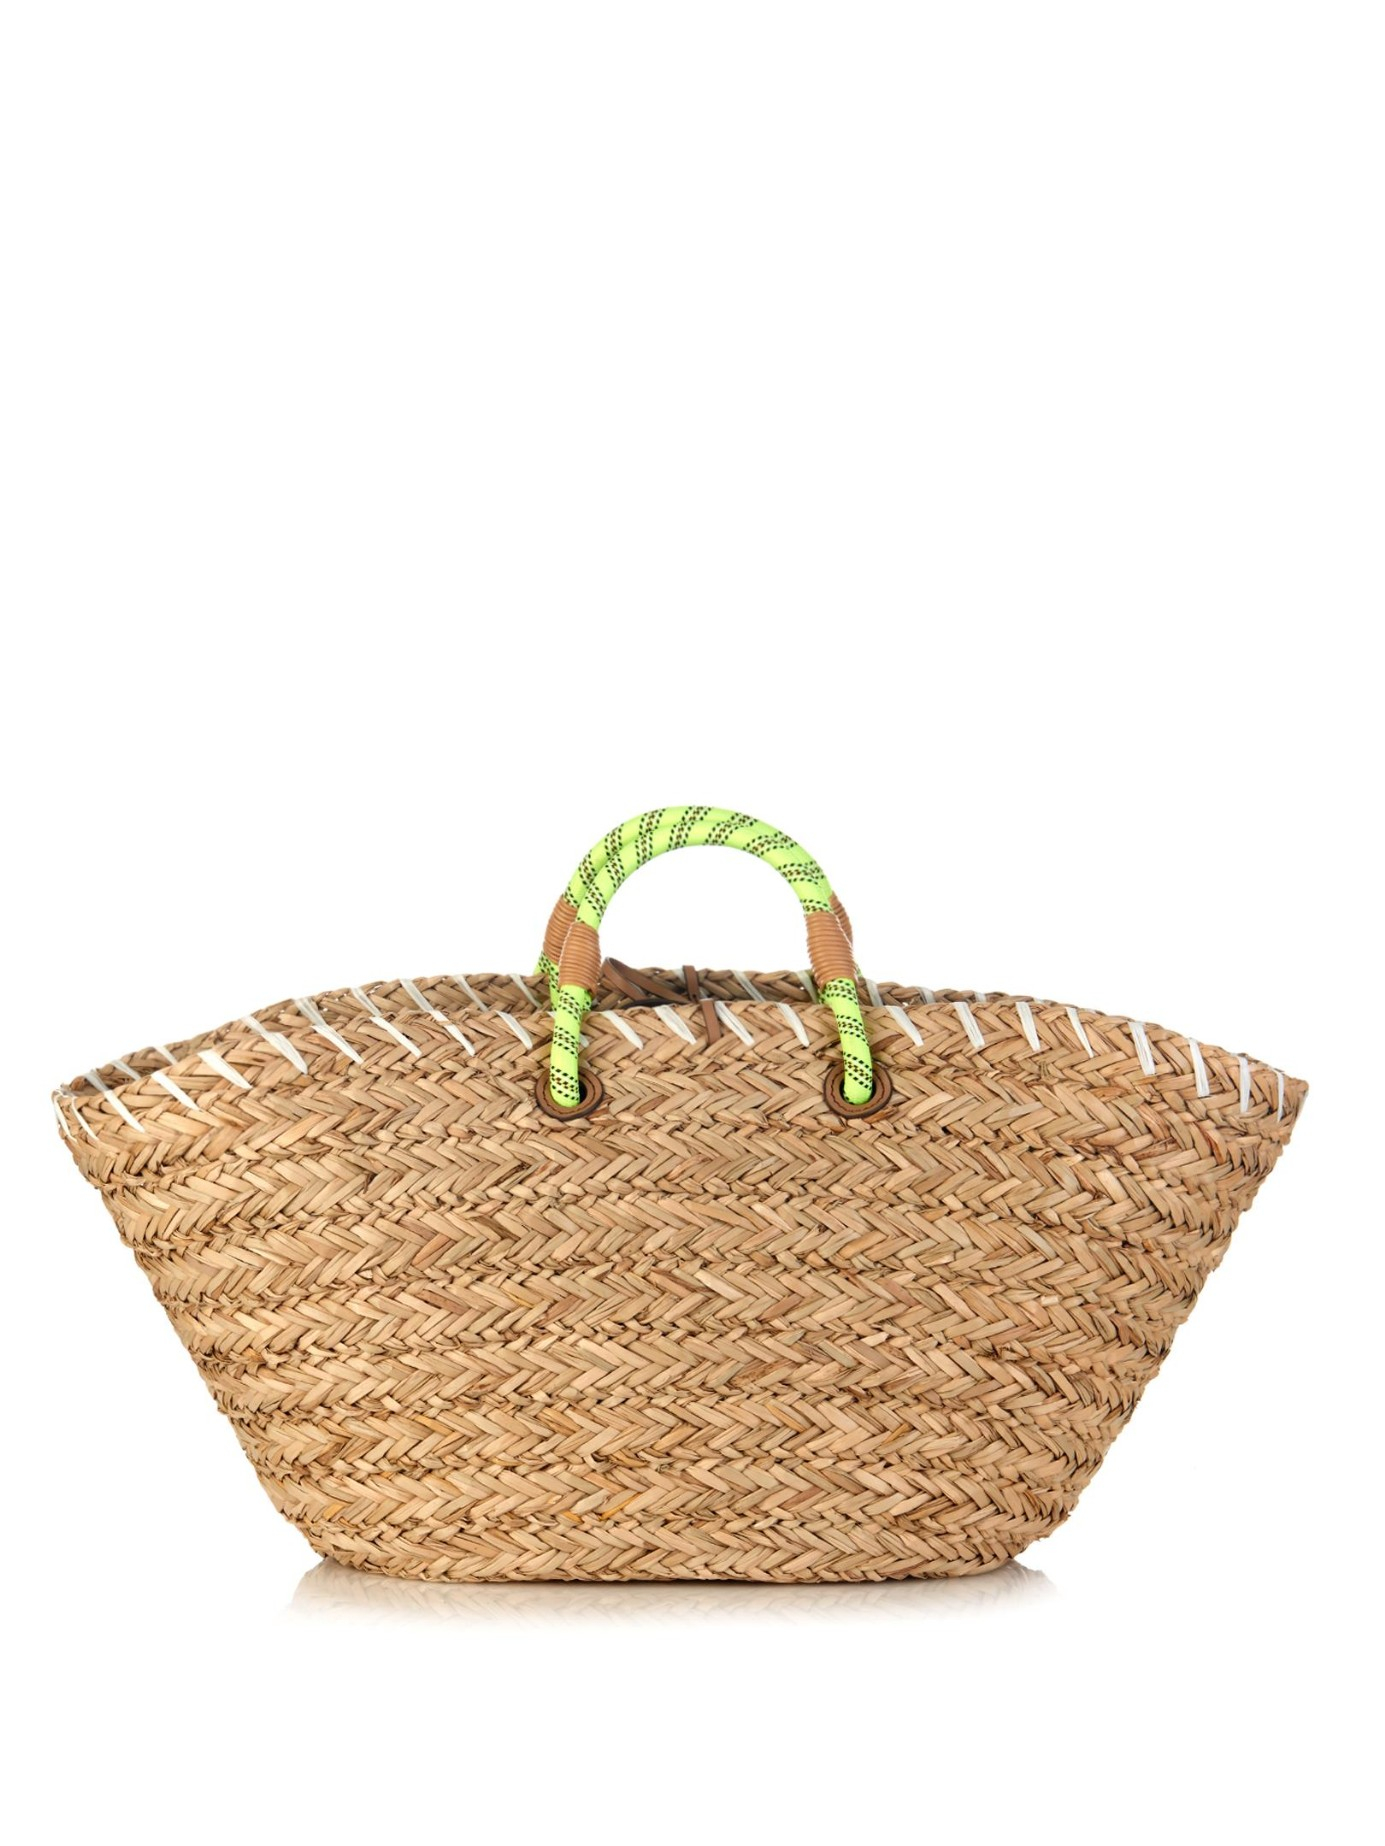 Anya hindmarch Eyes Straw Beach Bag in Brown | Lyst